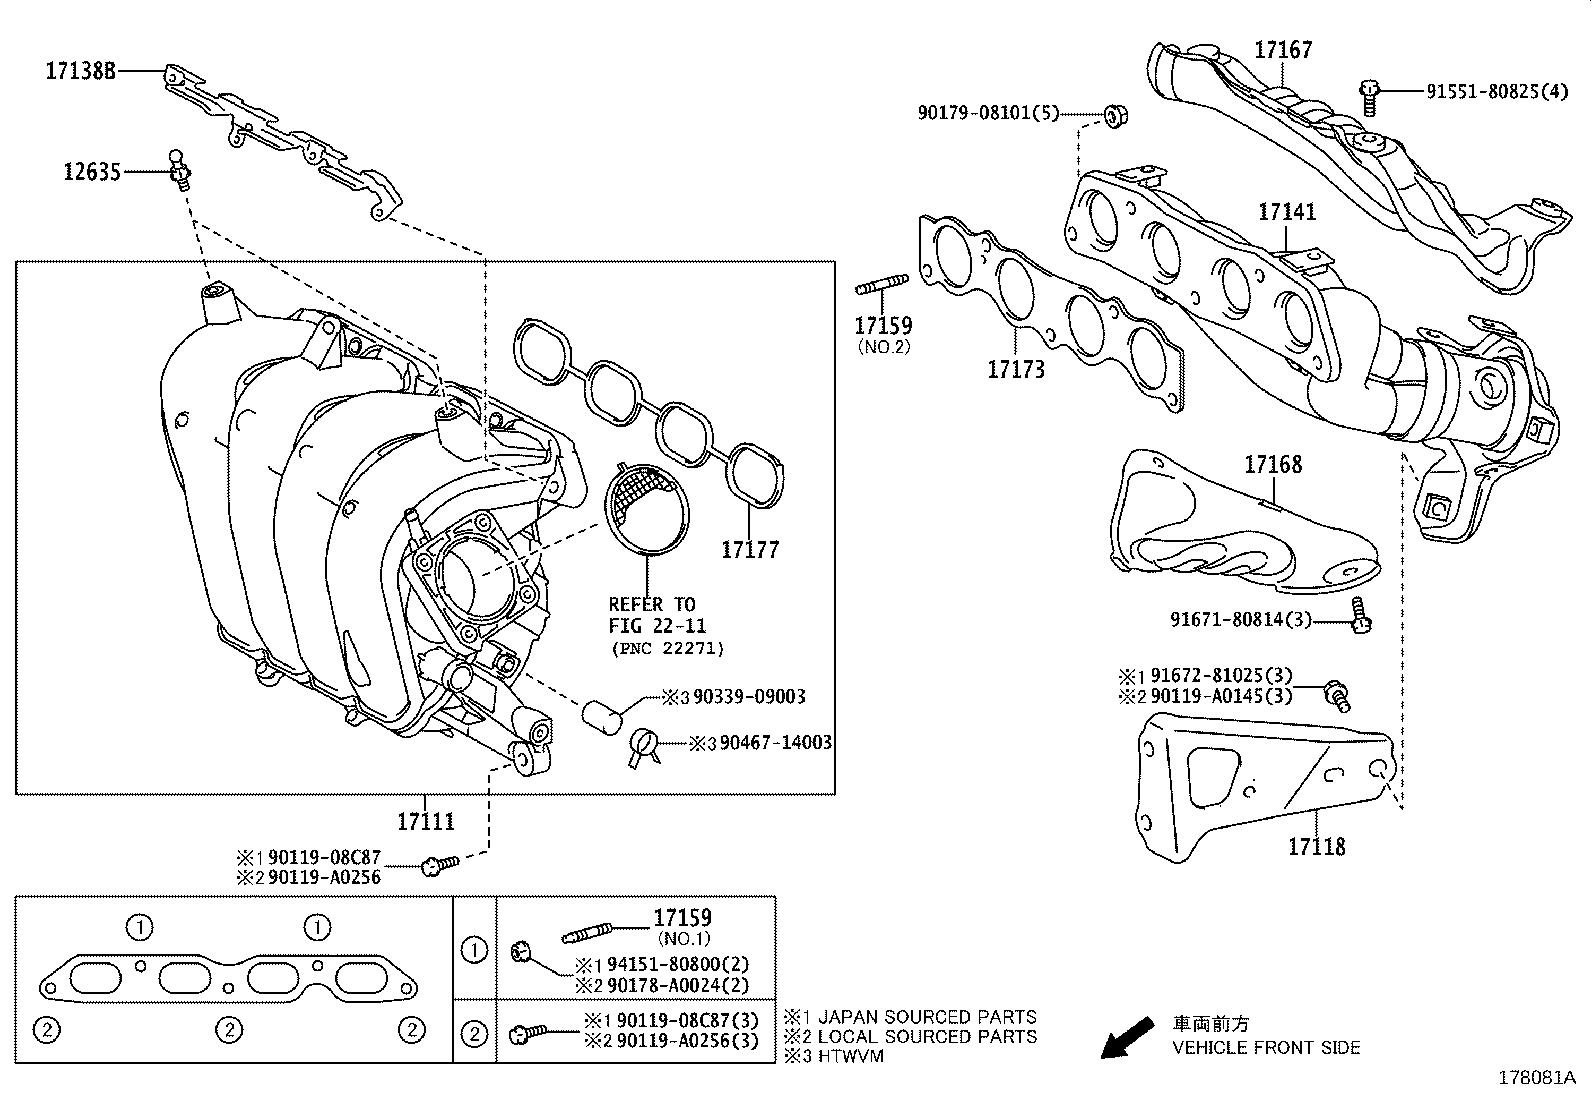 Toyota Corolla Exhaust Manifold Heat Shield Coming